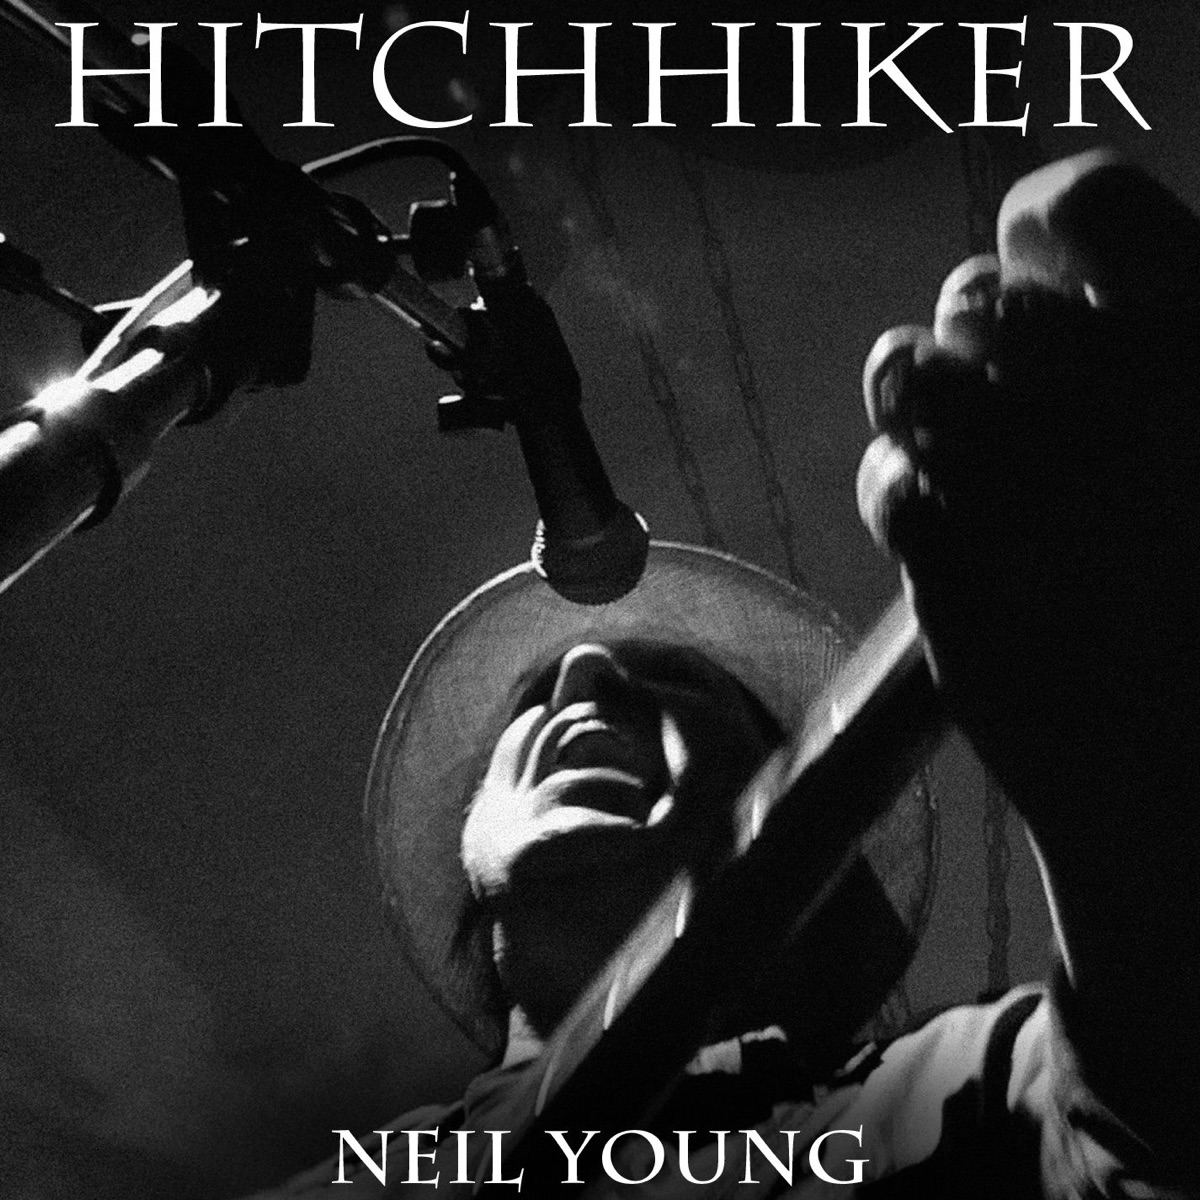 Hitchhiker - Single Neil Young CD cover